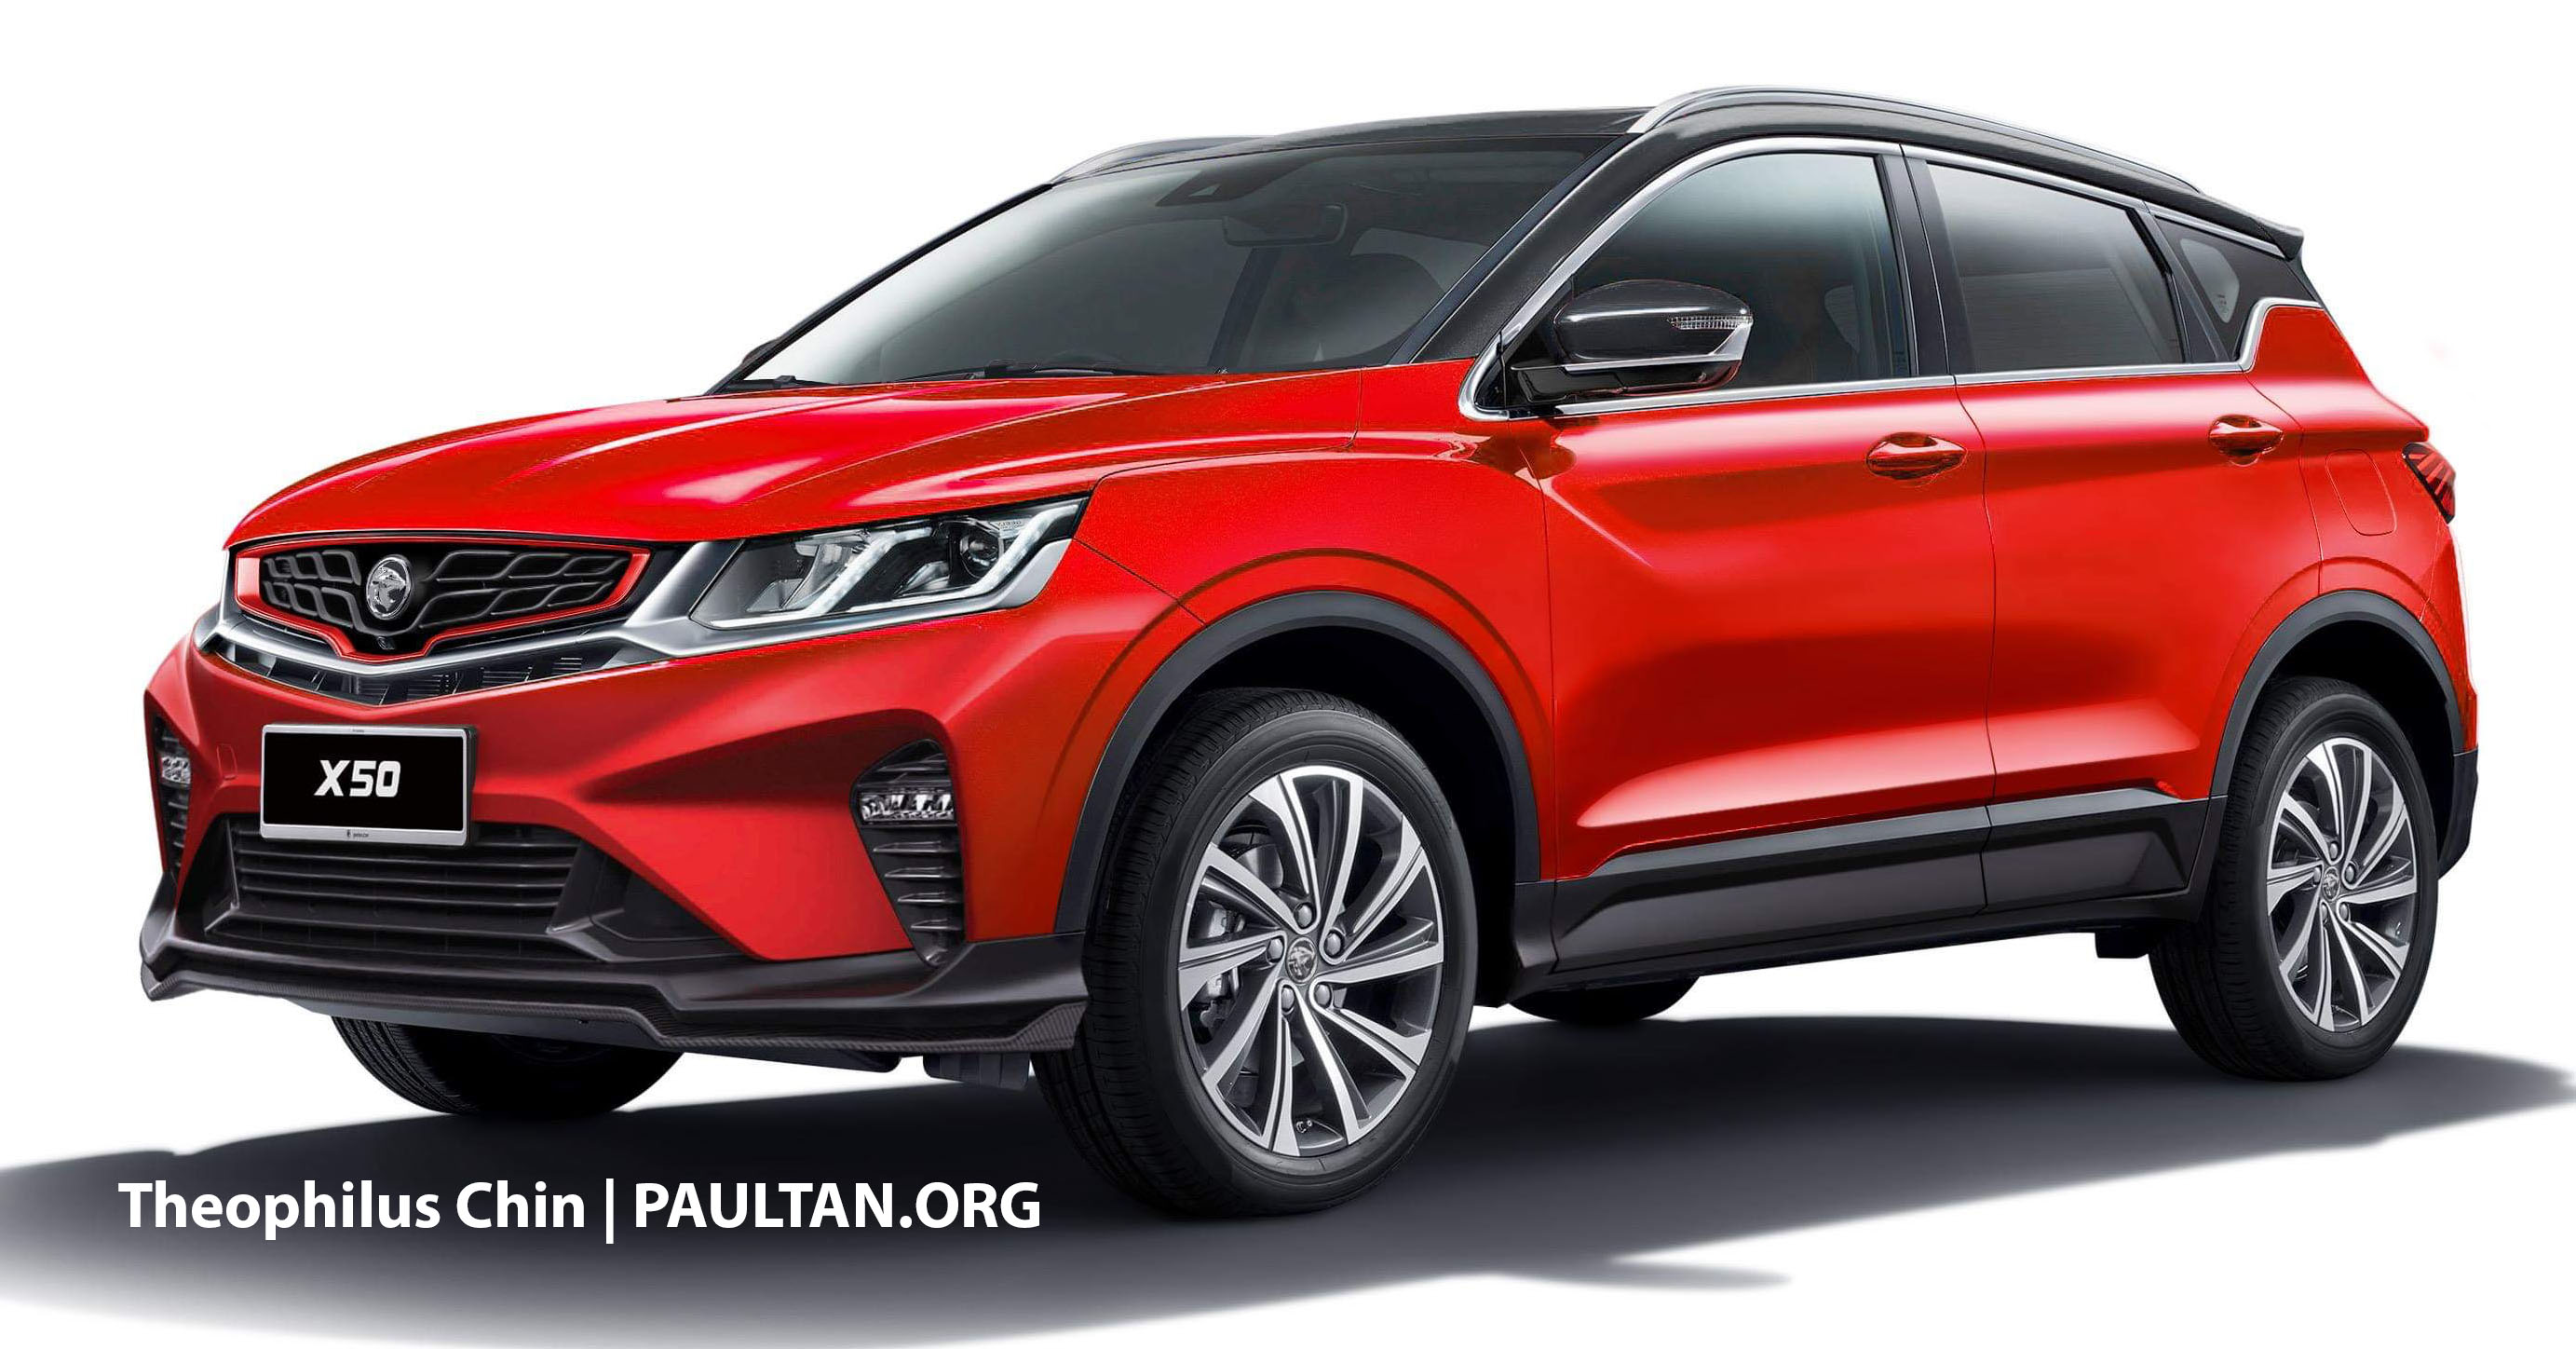 2020 Proton X50 Due Out Soon Order Books Open Paultan Org